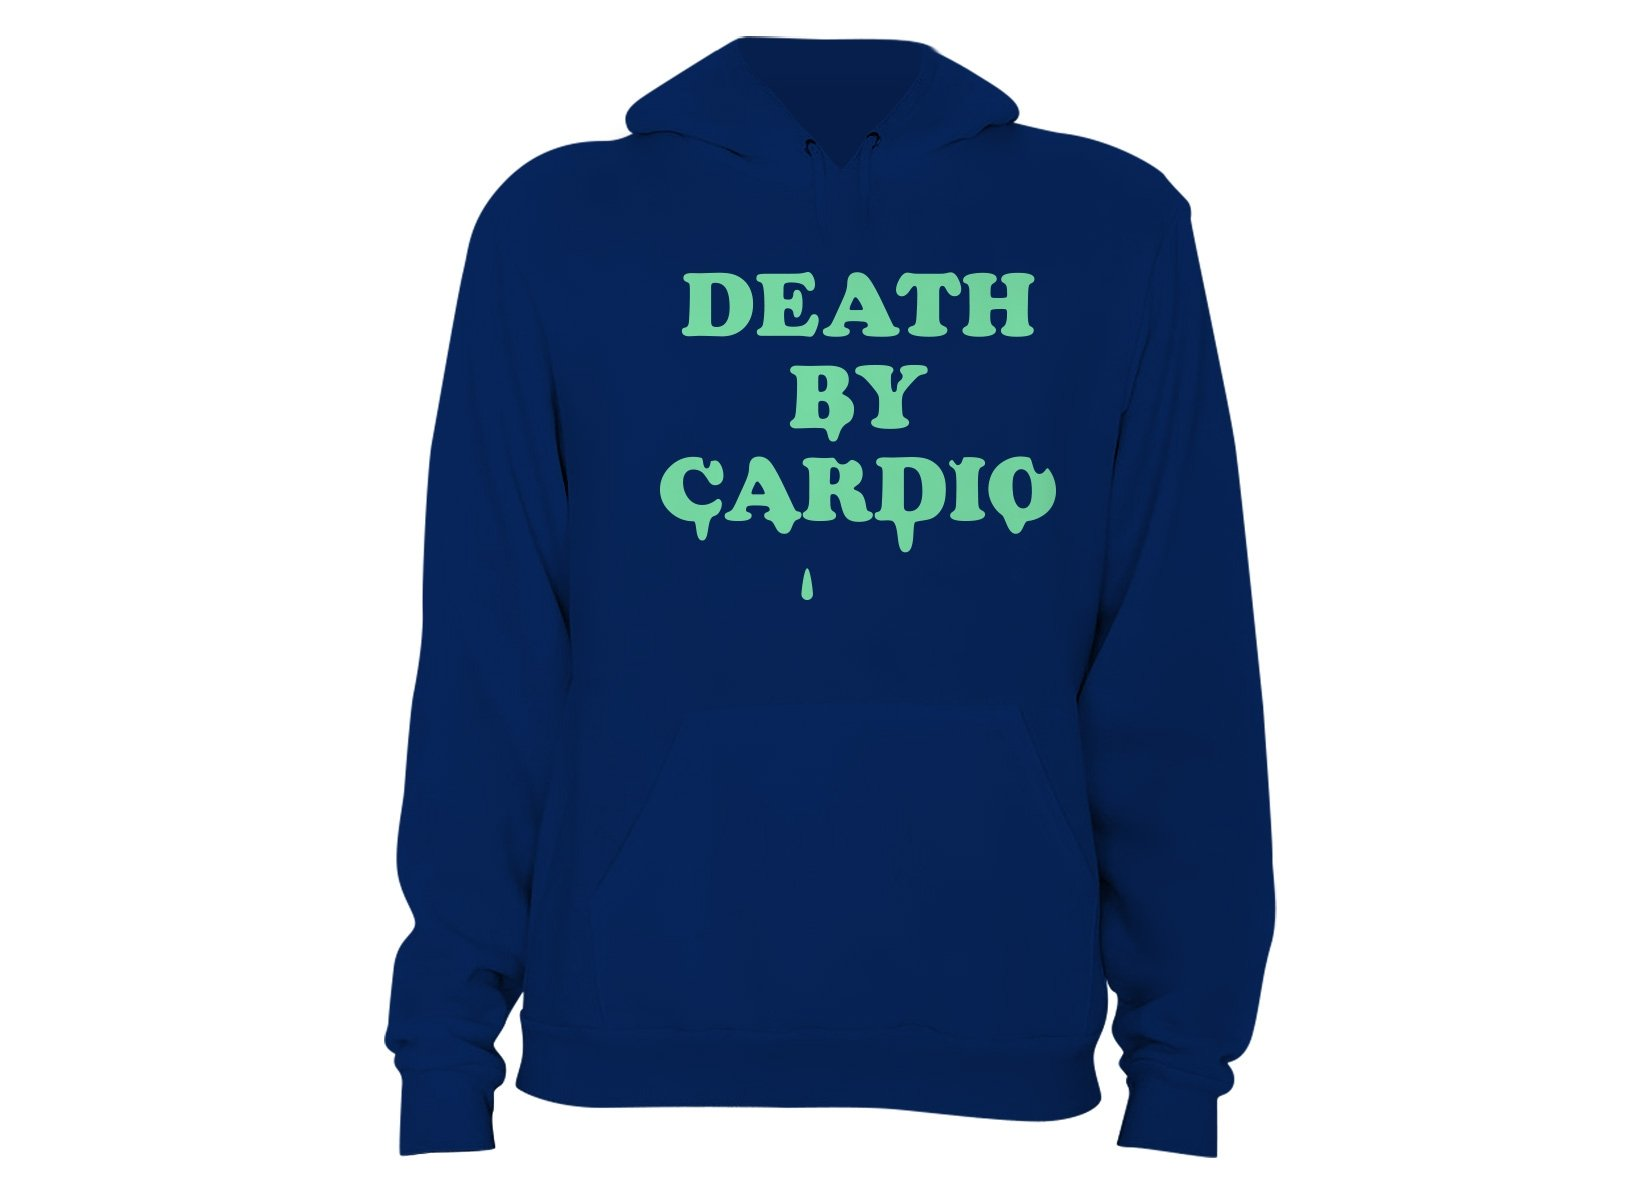 Death By Cardio on Hoodie